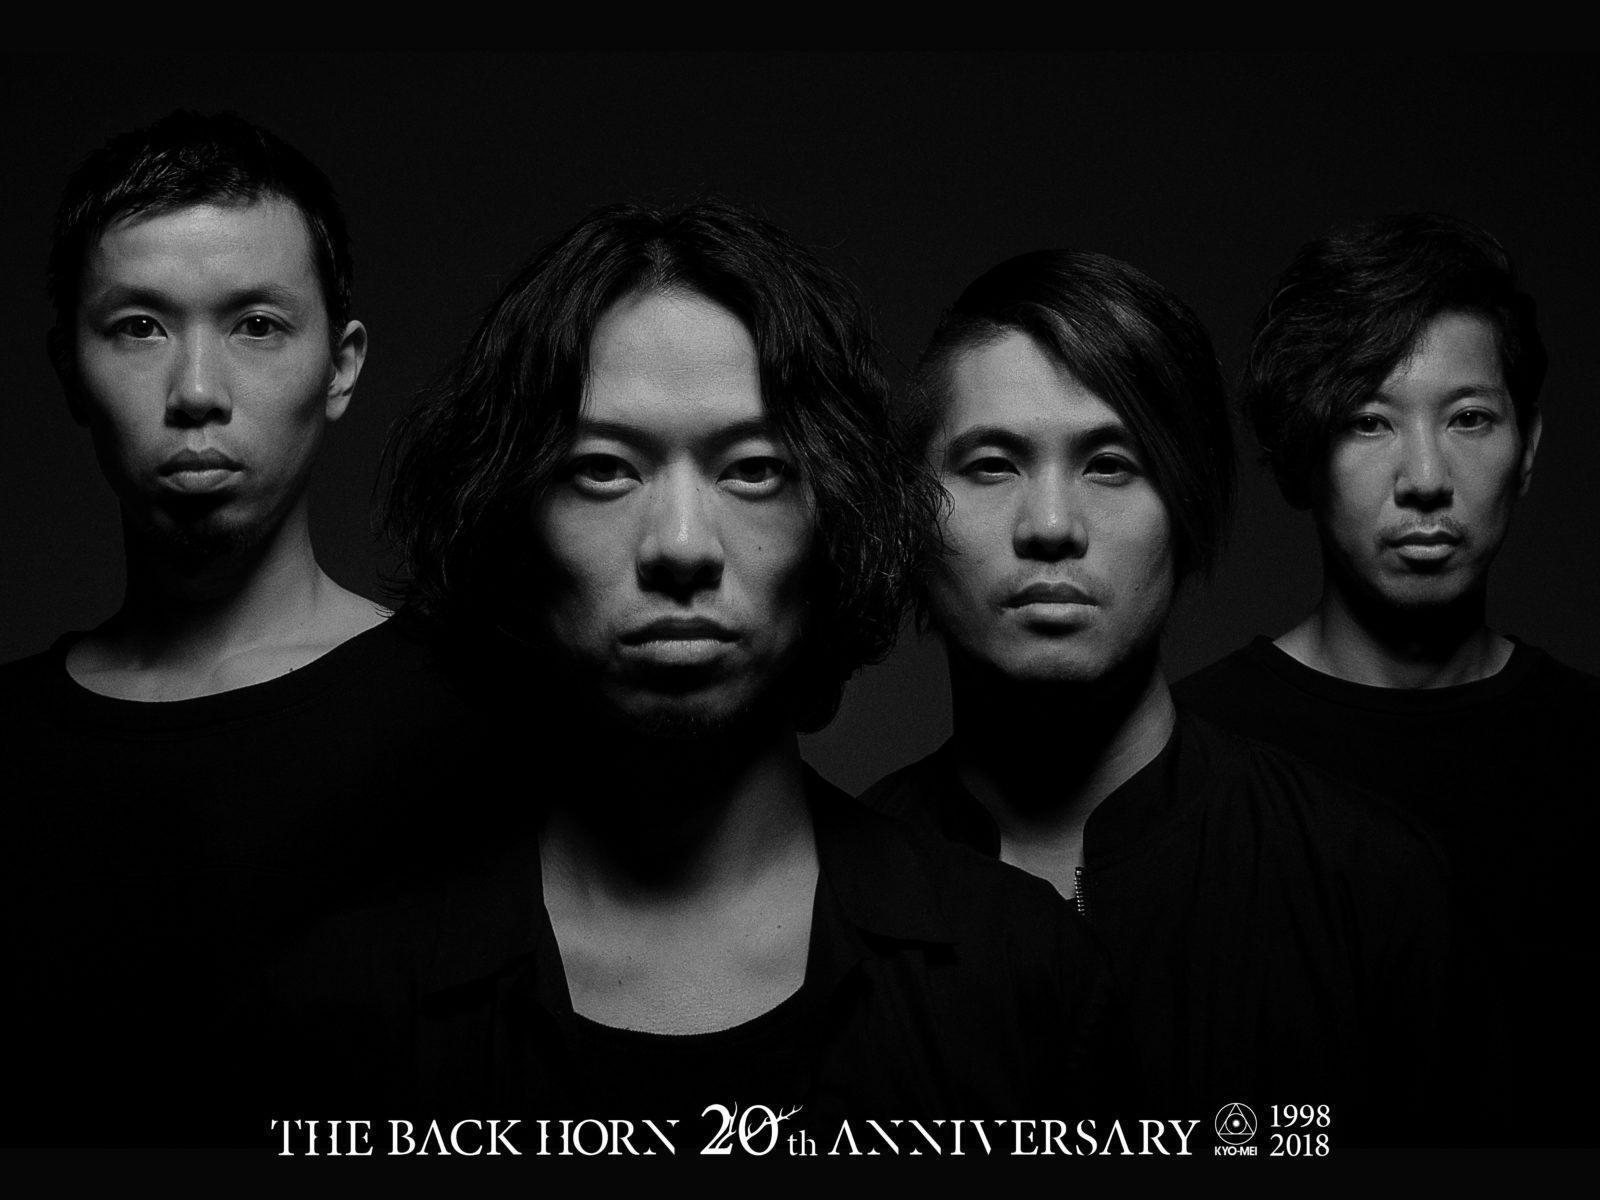 THE BACK HORN、結成20周年ワンマンツアーファイナルの日本武道館公演詳細発表サムネイル画像